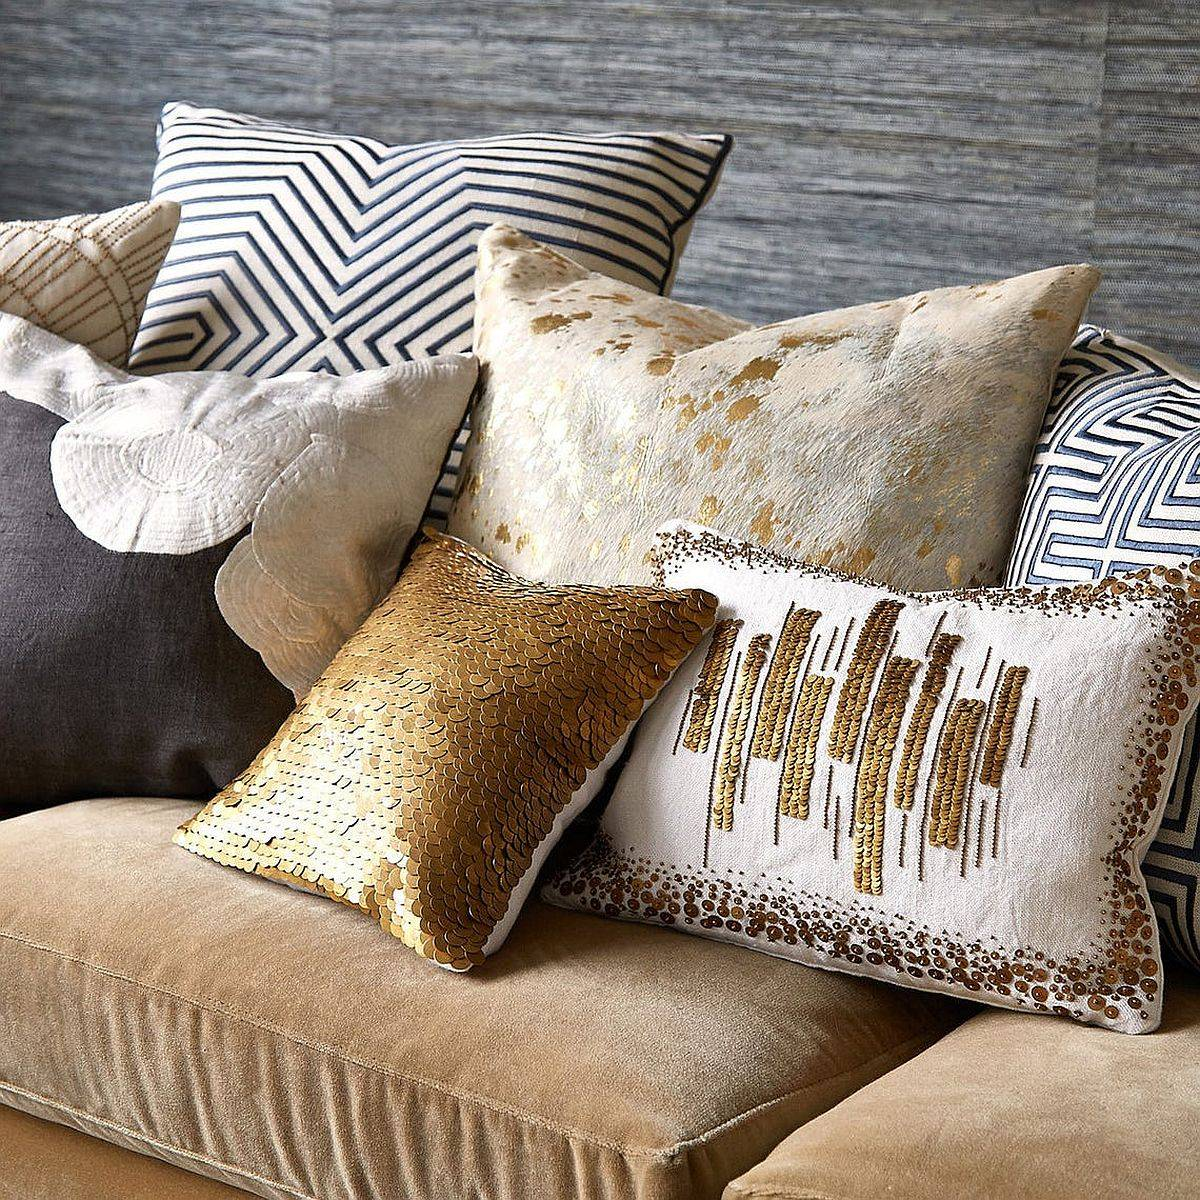 Find-a-metallic-accent-pillow-with-just-the-right-look-for-your-living-room-82778